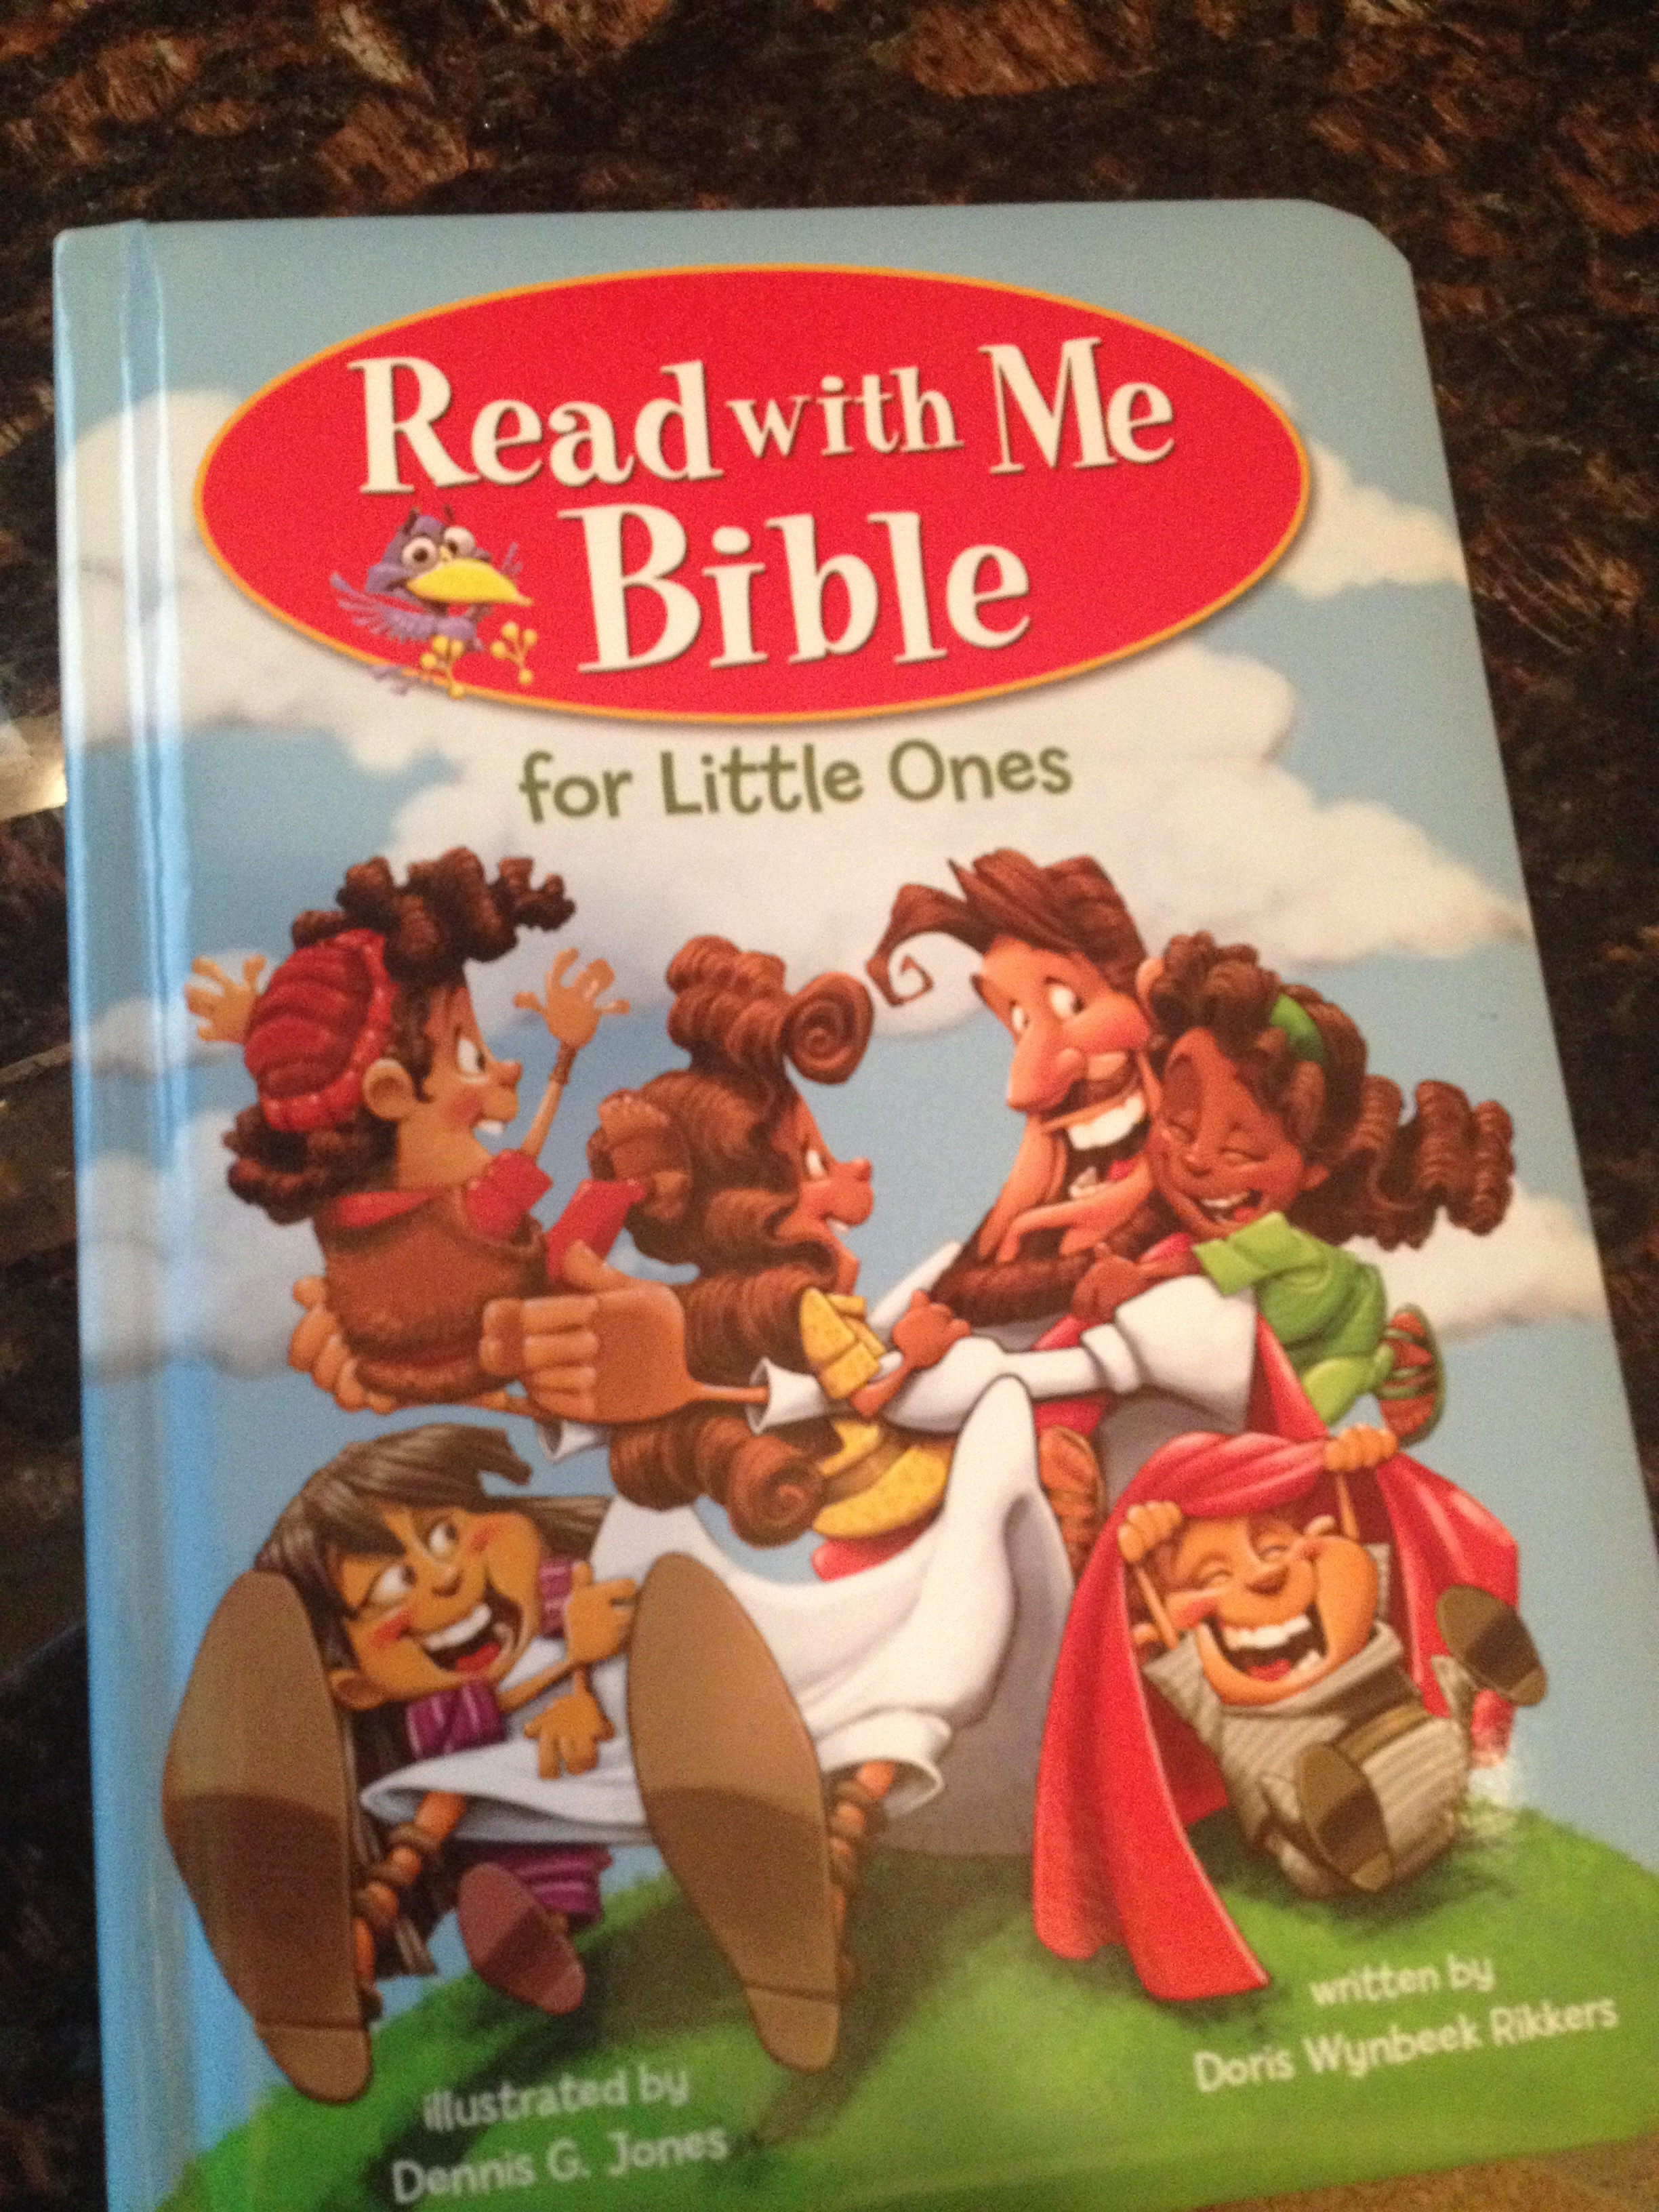 Read with Me Bible for Little Ones- Book Review by The He Said She Said Experience